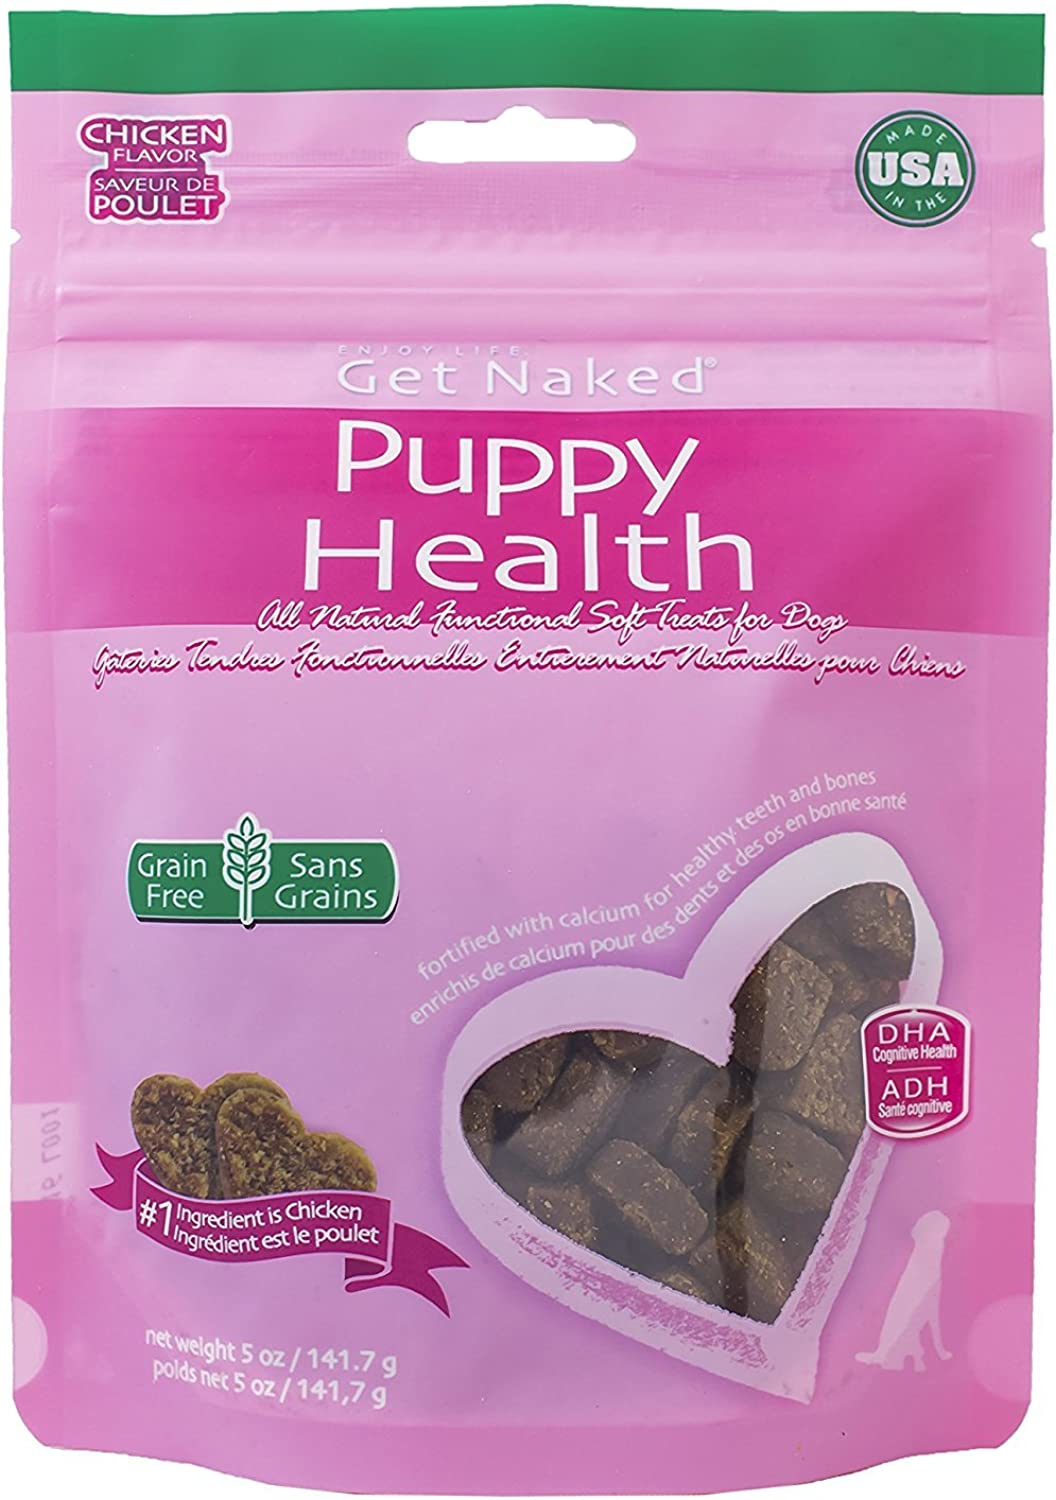 (6 PACK) NBone 201578 Get Naked Grain Free Package, 5.0 oz per Pouch, Puppy Health Soft Dog Treat, Recommended for Dogs from 5 Lbs and More